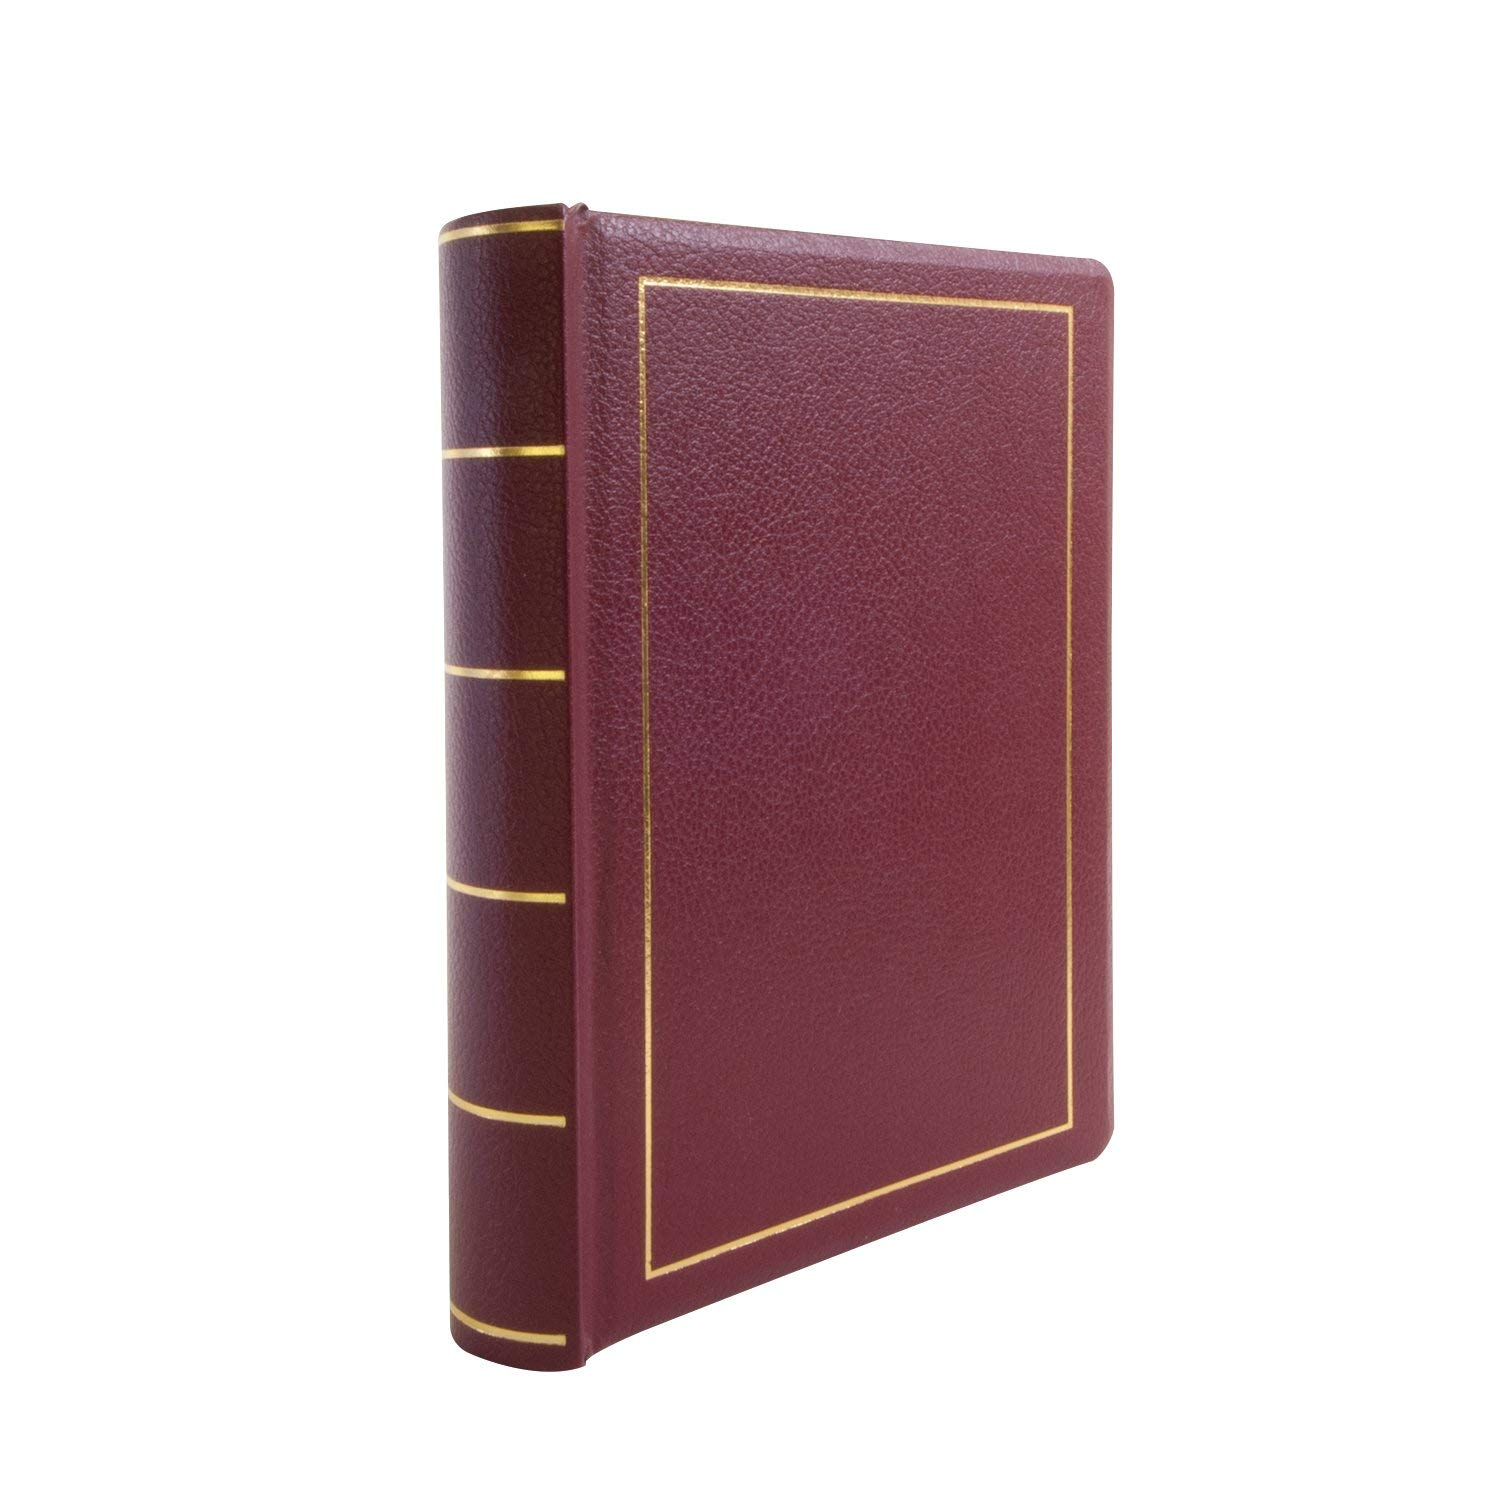 Wilson Jones Minute Book, Binder Only, Letter Size, 250 Page Capacity, Imitation Leather, Red (W396-11) by Wilson Jones